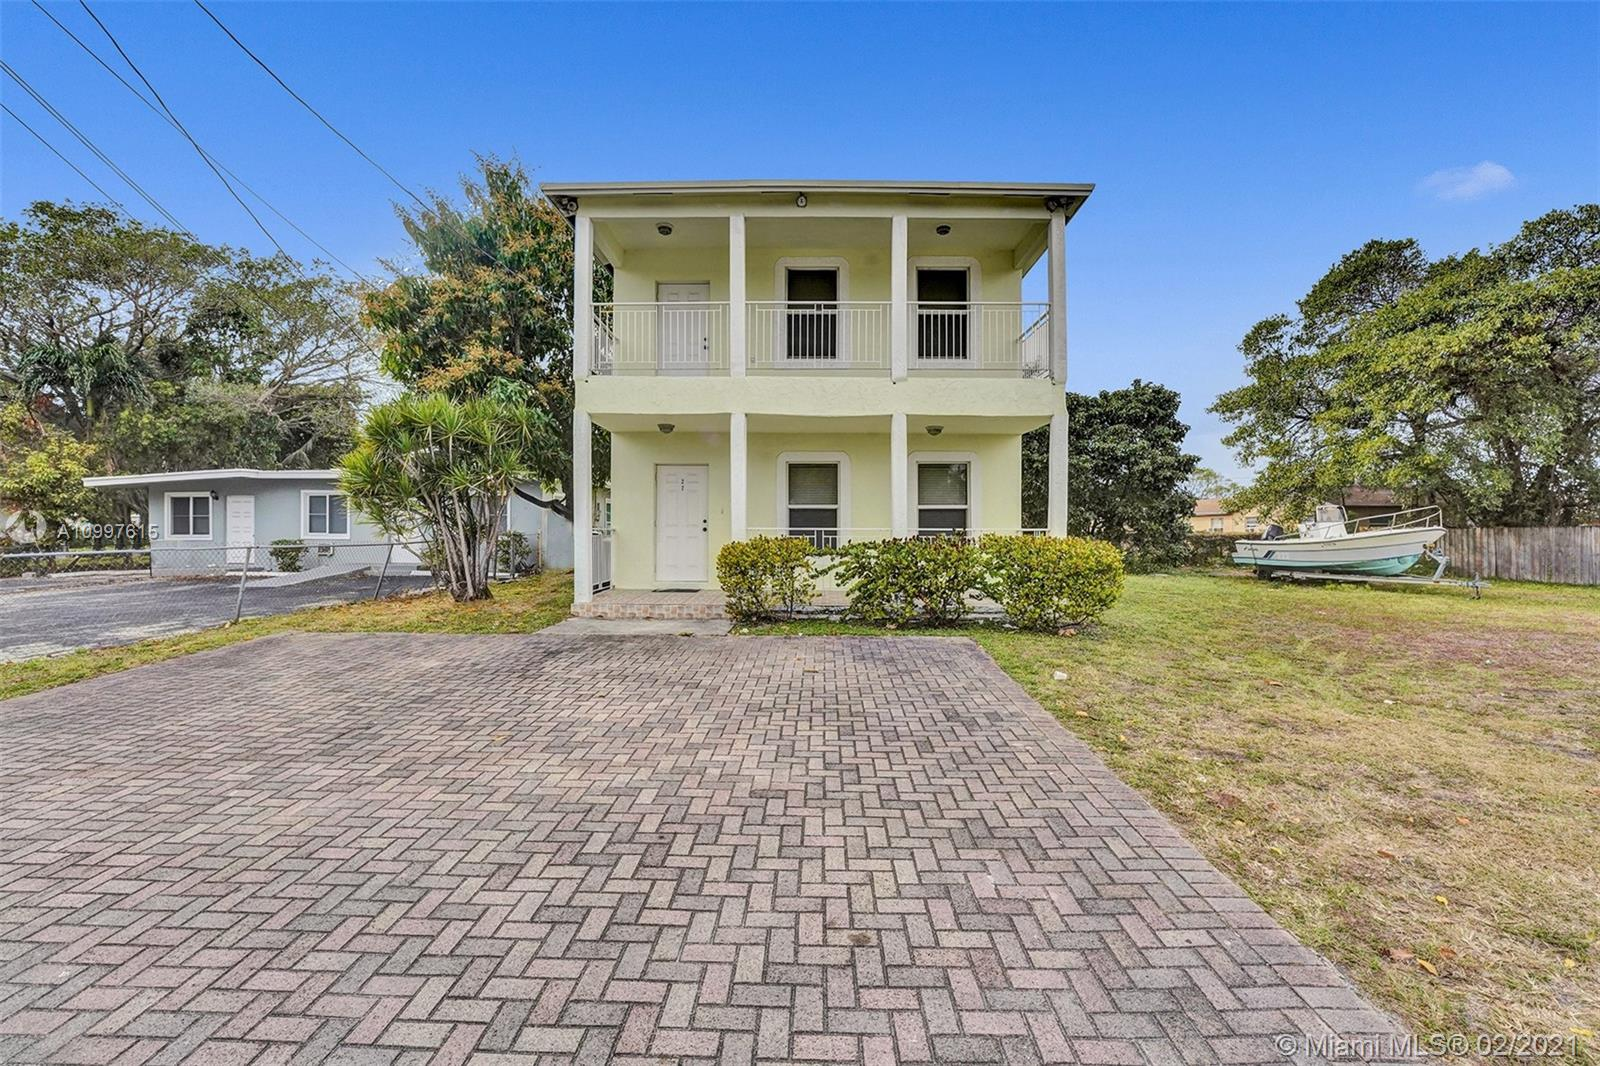 Property was recently appraised, priced right for quick sale. 2 story single family home,Excellent floor plan, stainless steel appliances, upgraded kitchen, movie room downstairs, huge master bedroom, close to Dania's town center, shopping centers, hwys, and more.